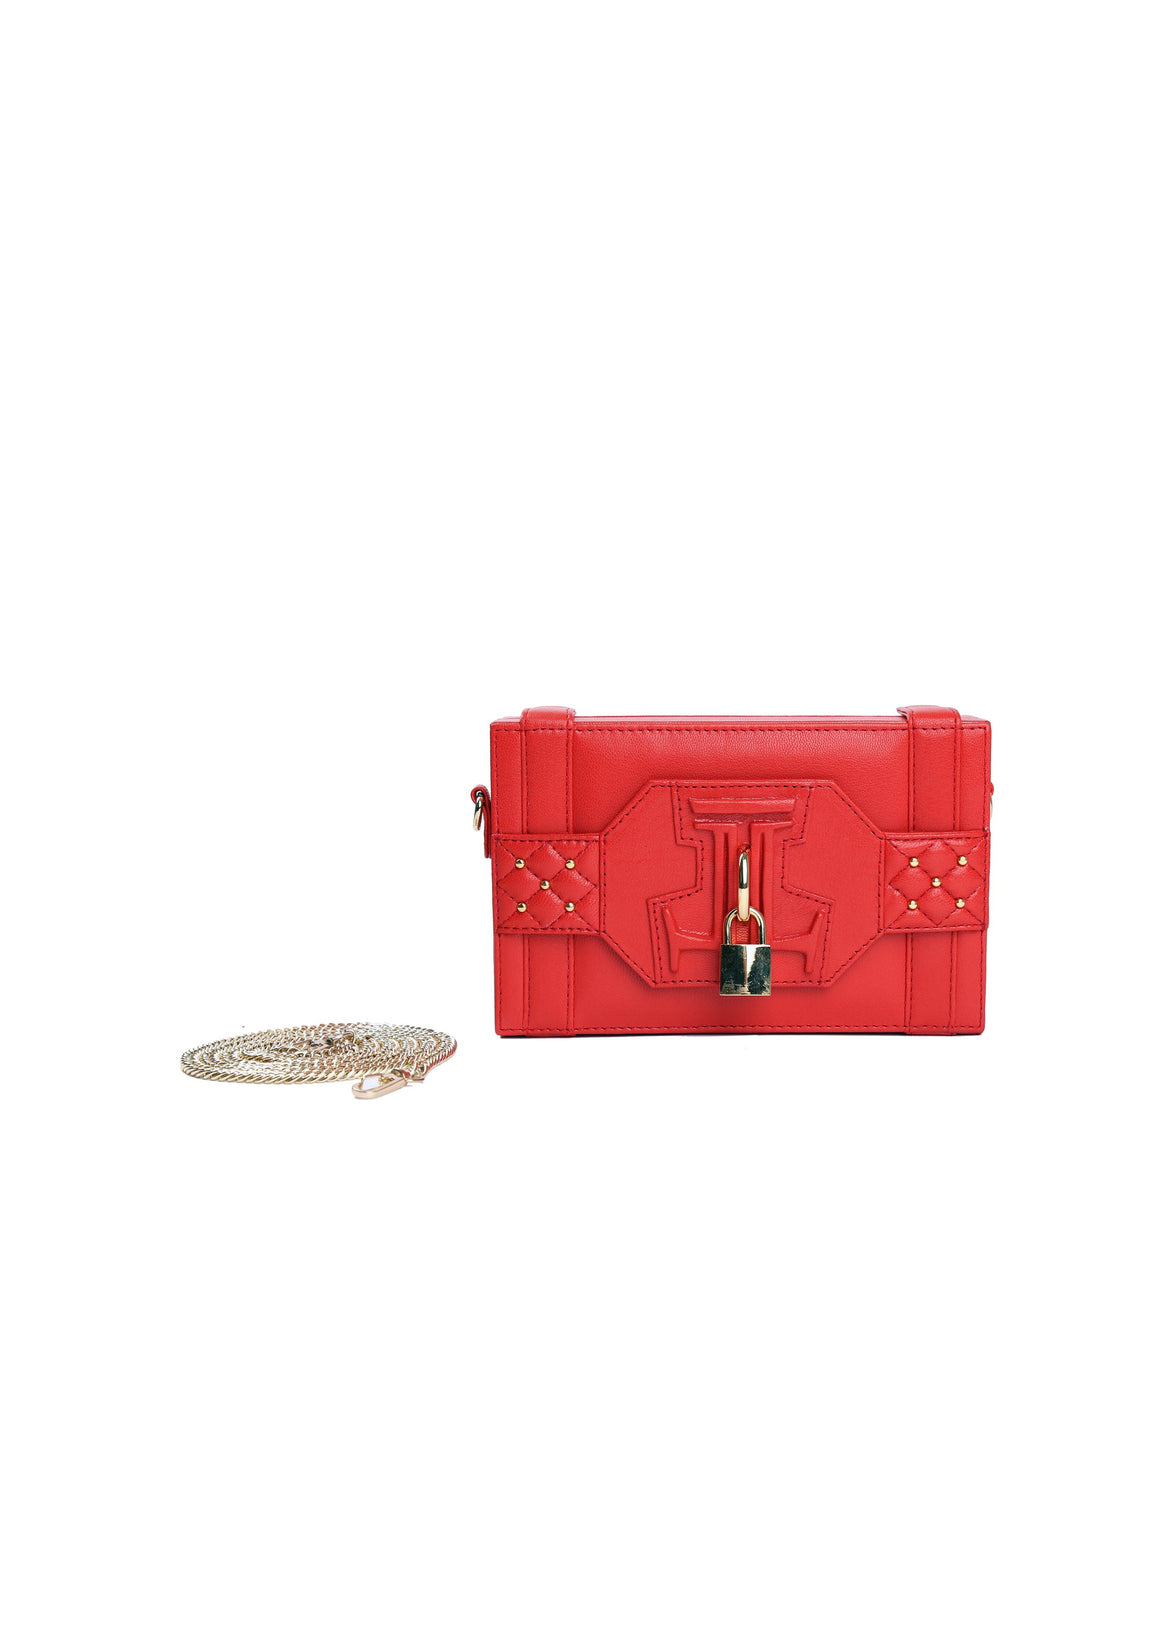 Julke - Poppy Red Diva Clutch